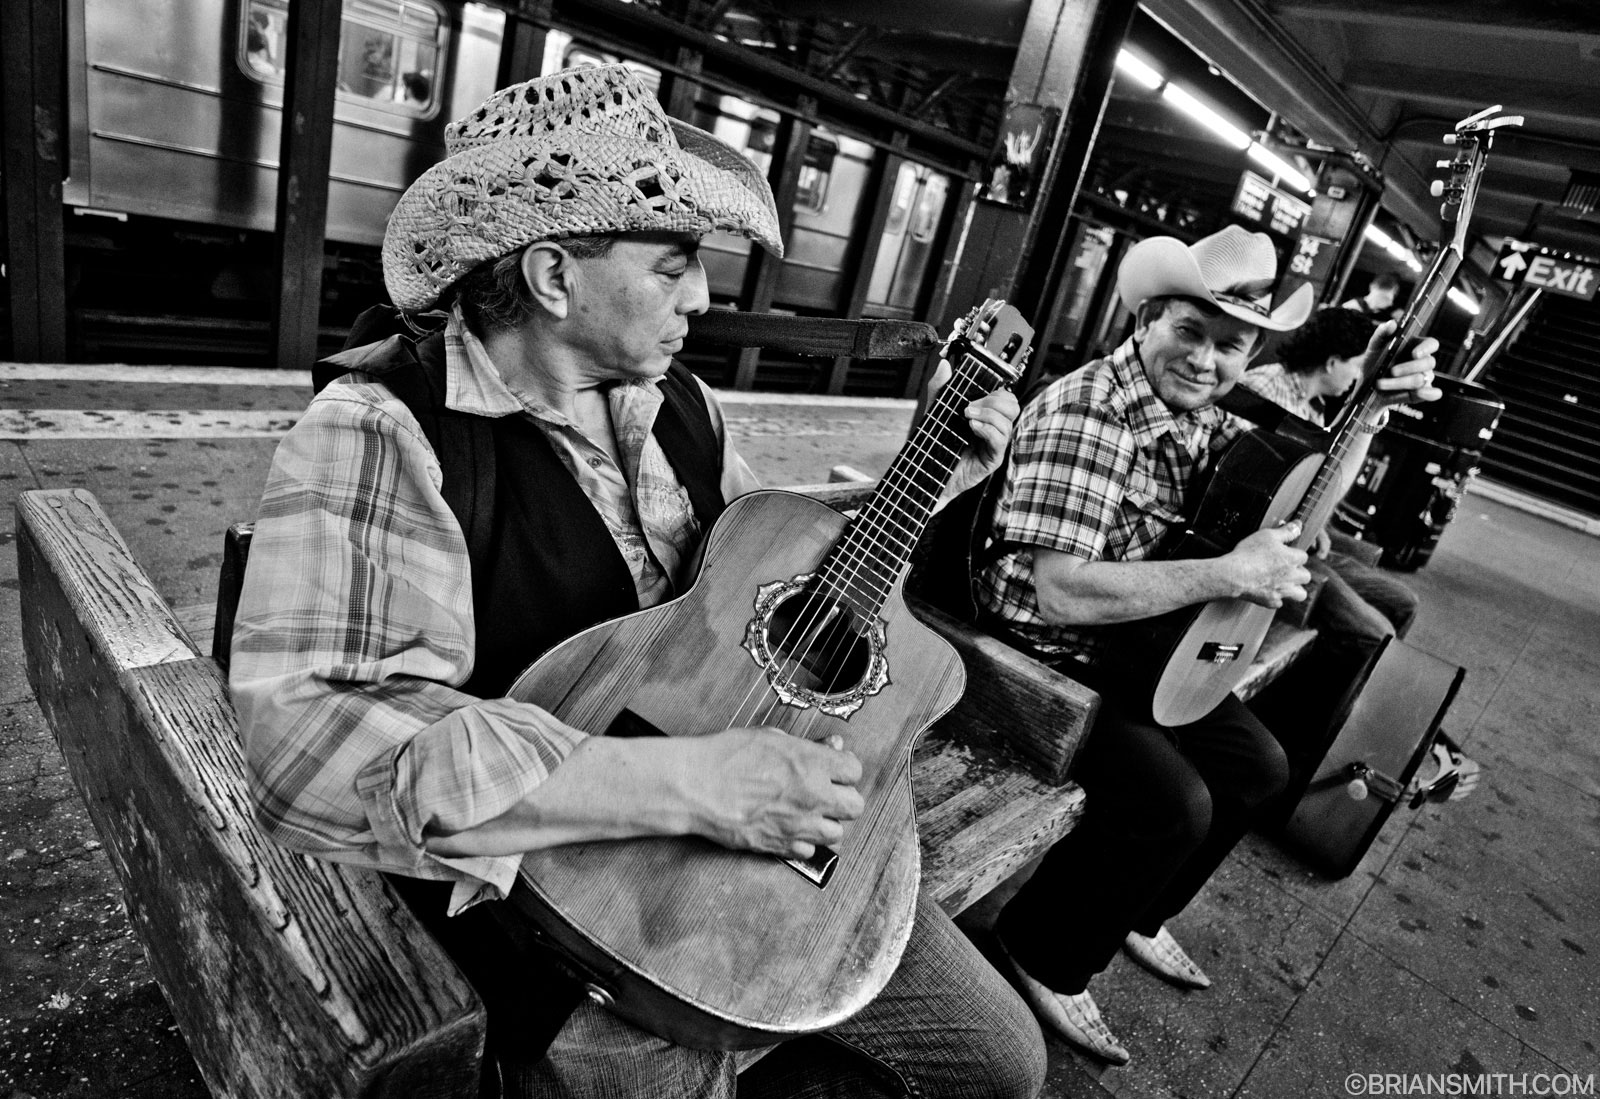 mariachi on new york subway photographed with Zeiss Touit 12mm/2.8